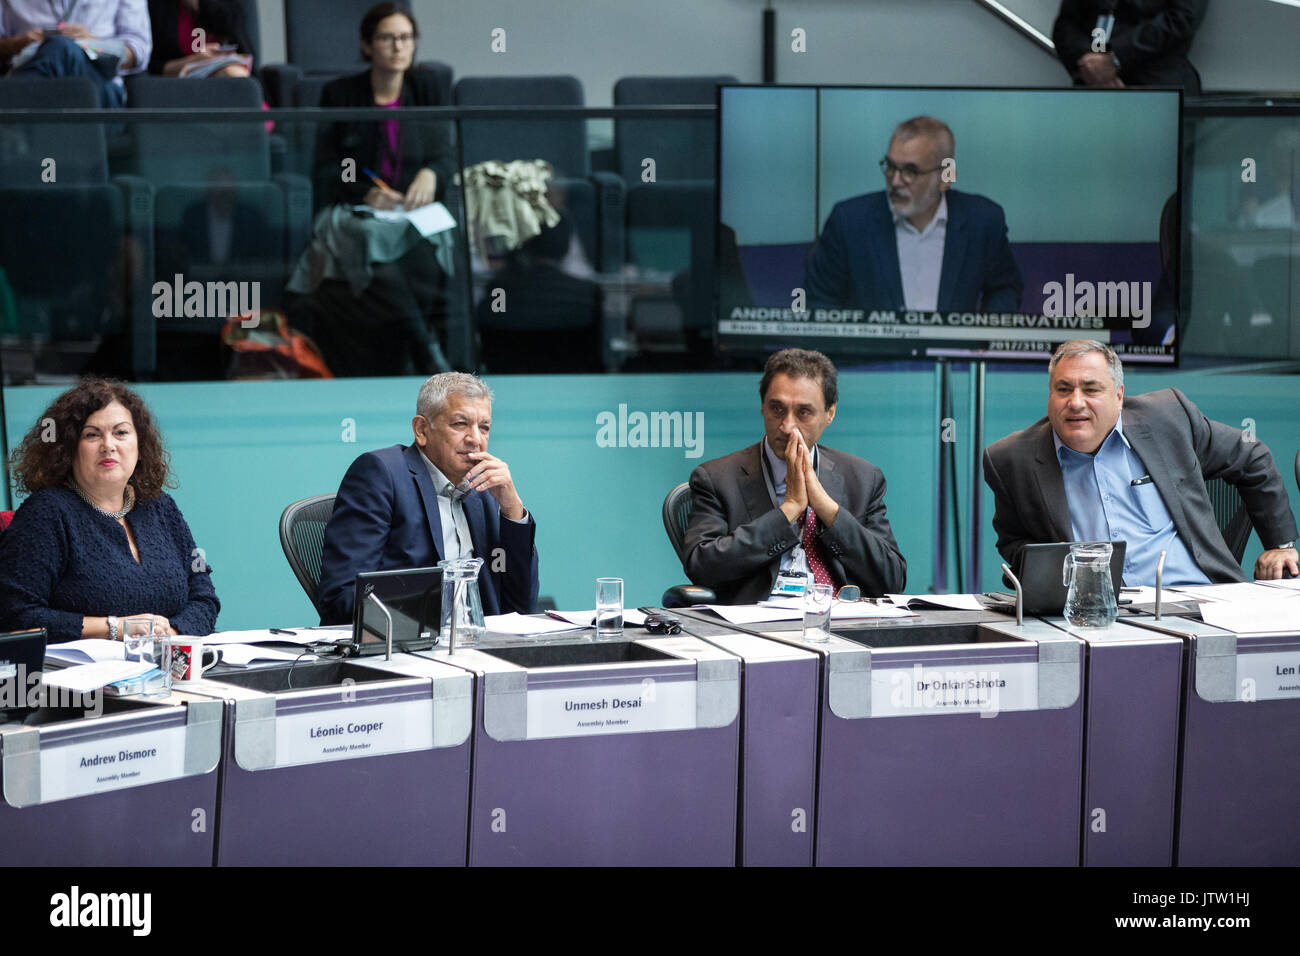 London, UK. 10th August, 2017. London Assembly Members Leonie Cooper, Unmesh Desai, Dr Onkar Sahota and Len Duvall listen to Mayor of London Sadiq Khan responding to questions during Mayor's Question Time at City Hall. Among topics discussed were: acid attacks, social housing, expenditure on fire and police services, 4G coverage on underground trains and noise from overnight underground trains. Credit: Mark Kerrison/Alamy Live News - Stock Image